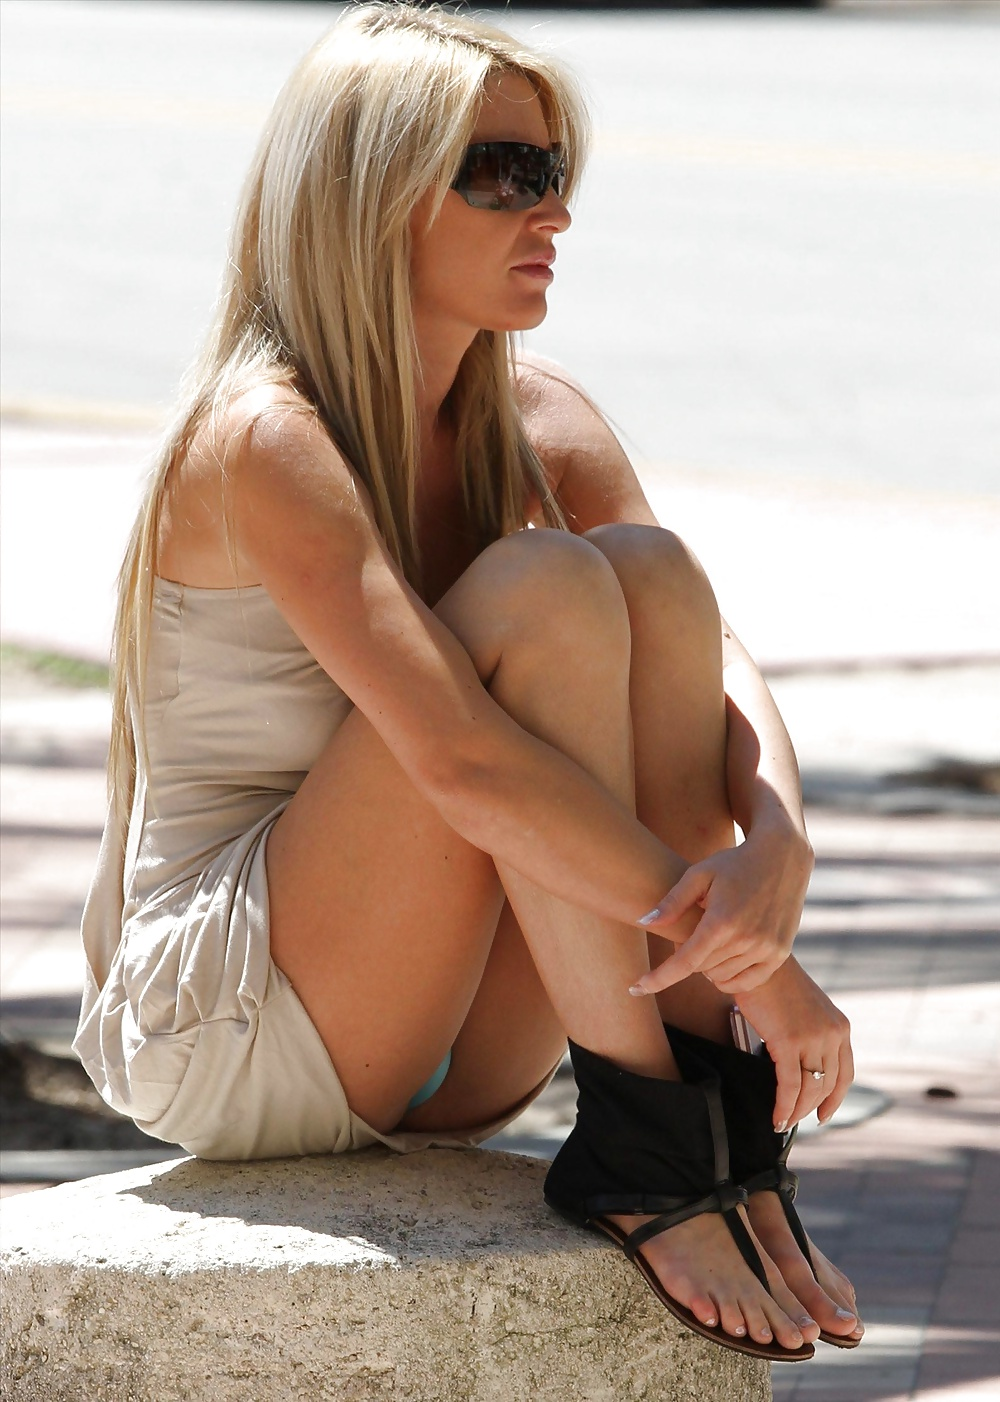 Free Blonde, Upskirt Pictures